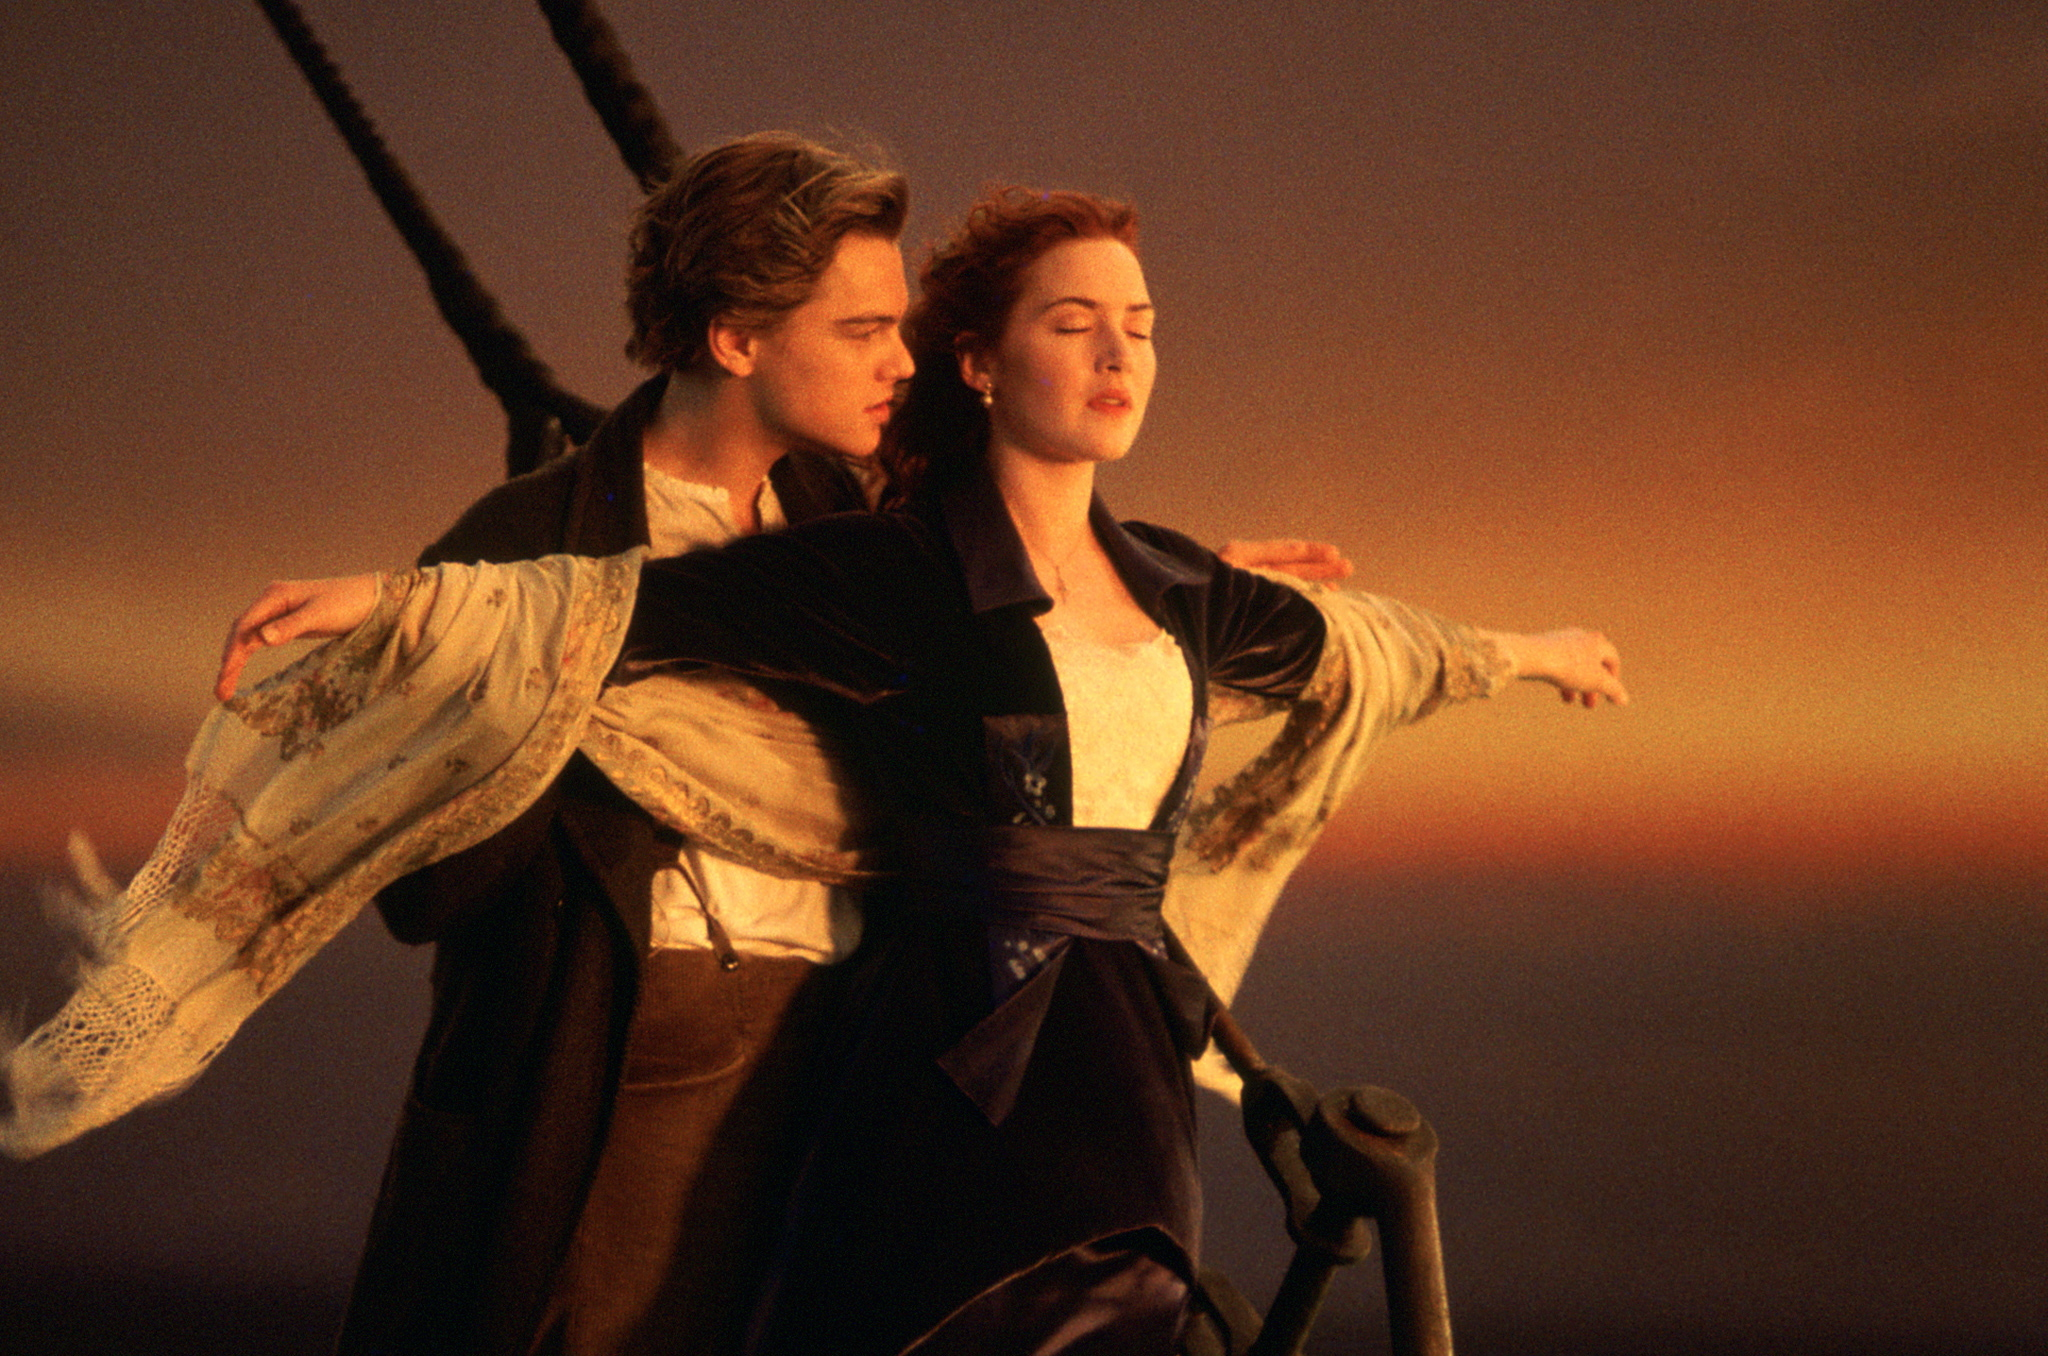 Romantic film: Titanic